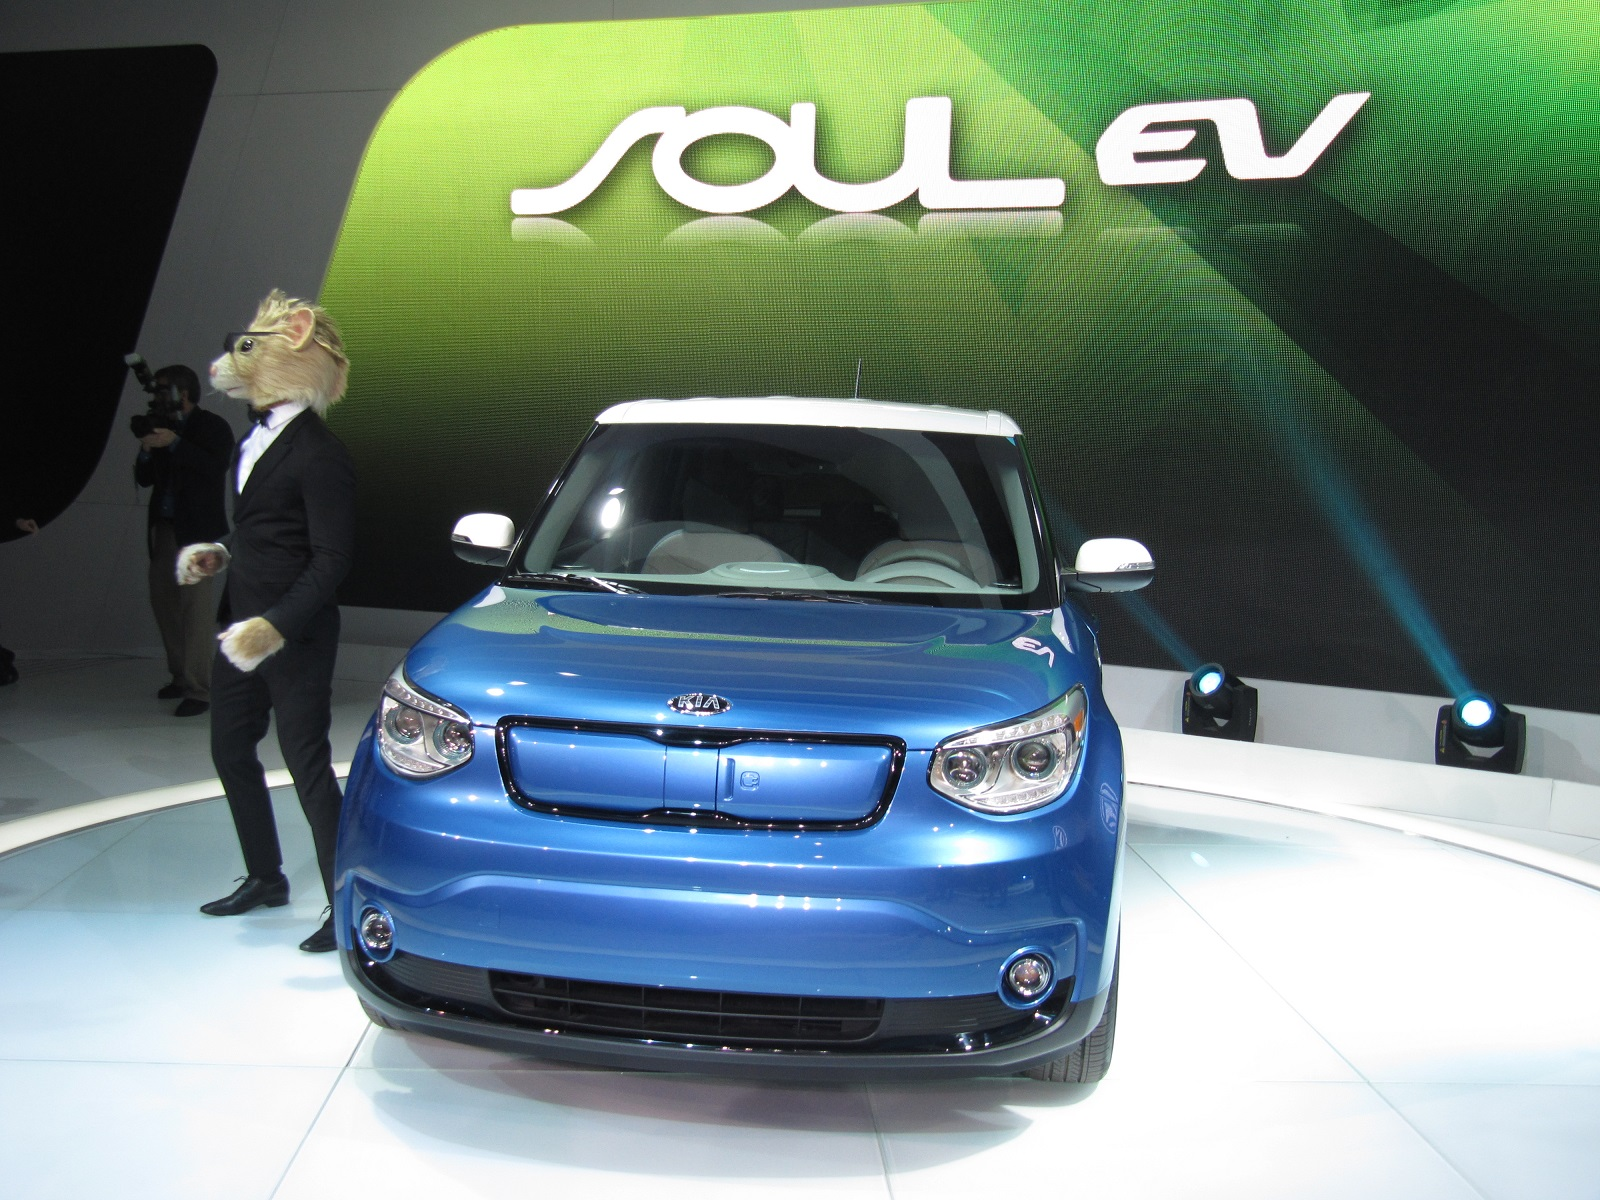 2015 kia soul ev: animals, electrons, maroon 5 (video)